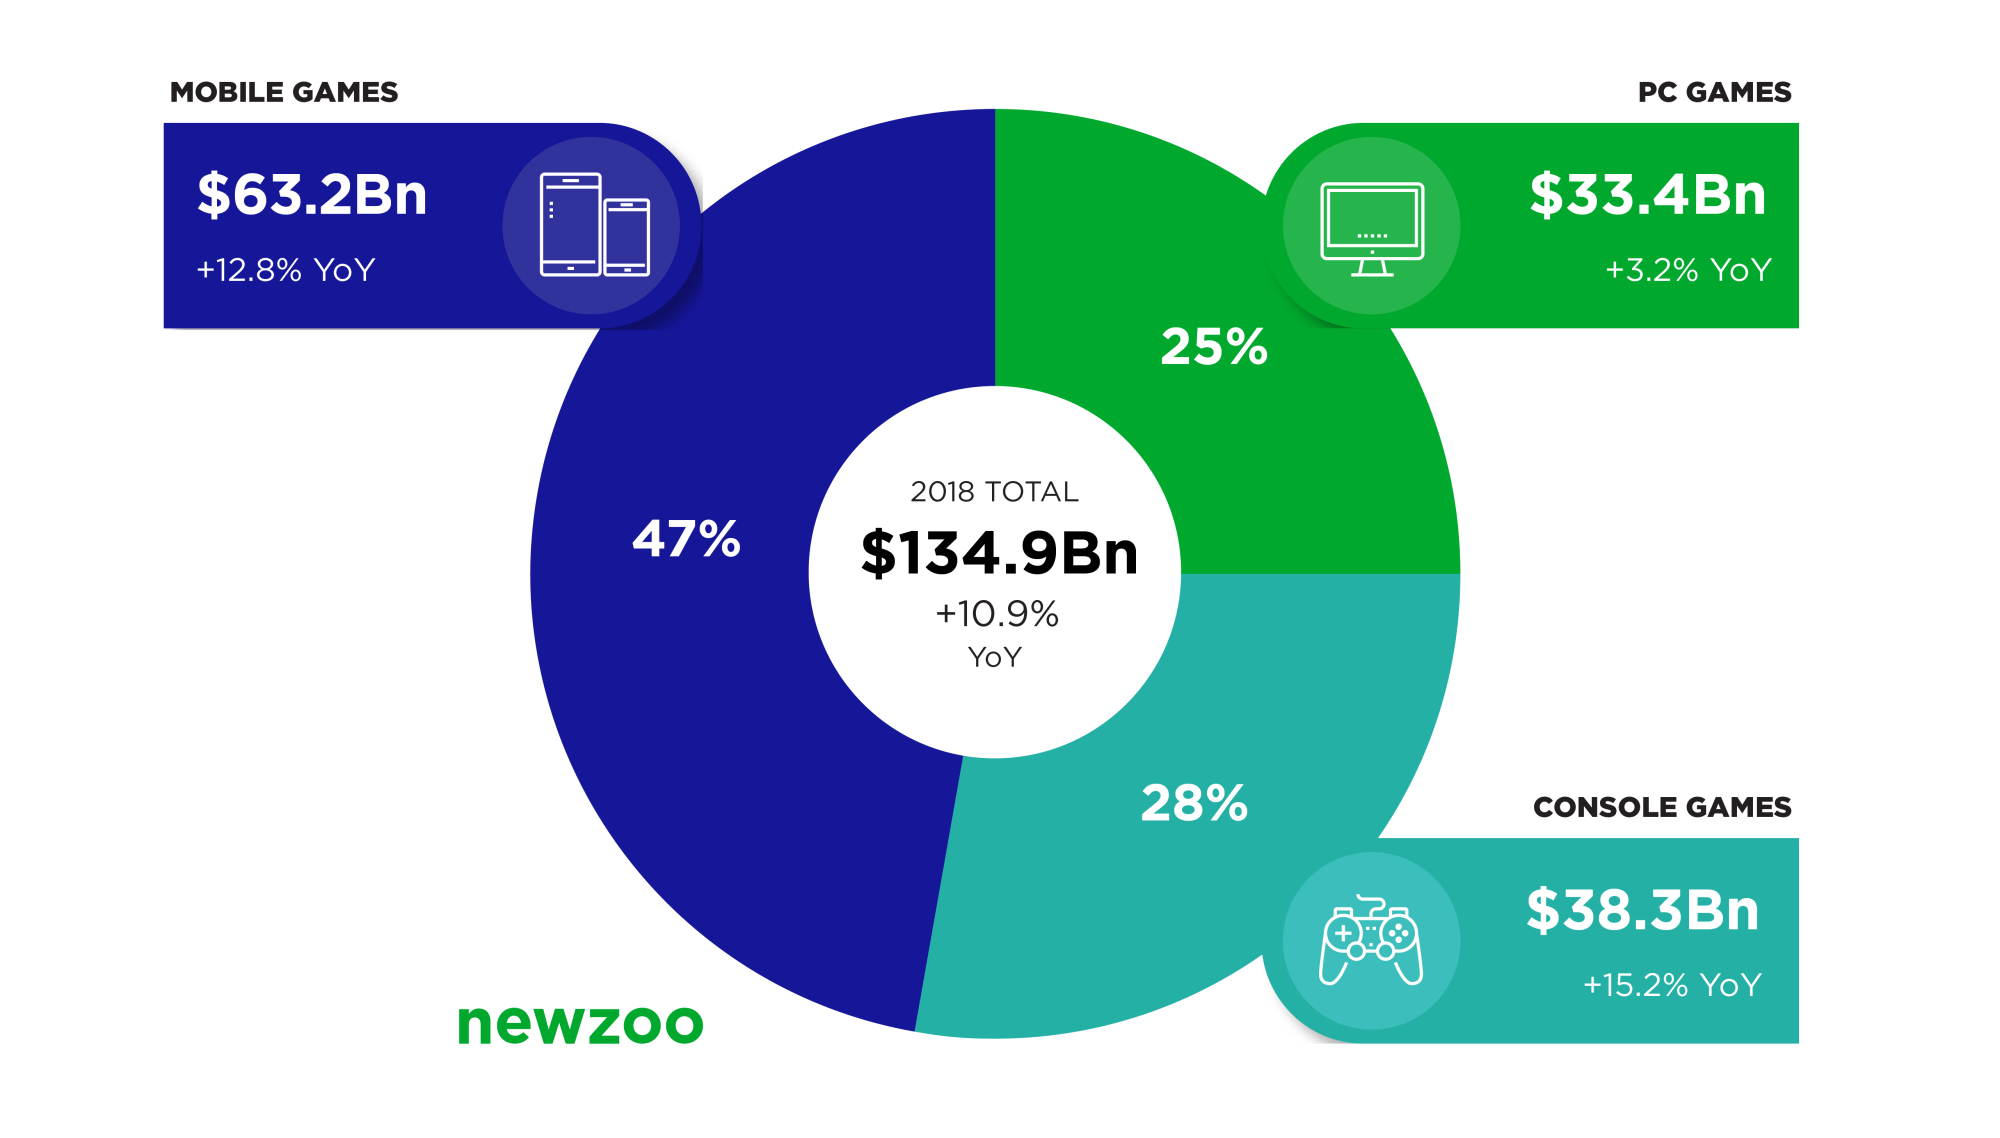 hight resolution of newzoo cuts global games forecast for 2018 to 134 9 billion lower mobile growth partially offset by very strong growth in console segment